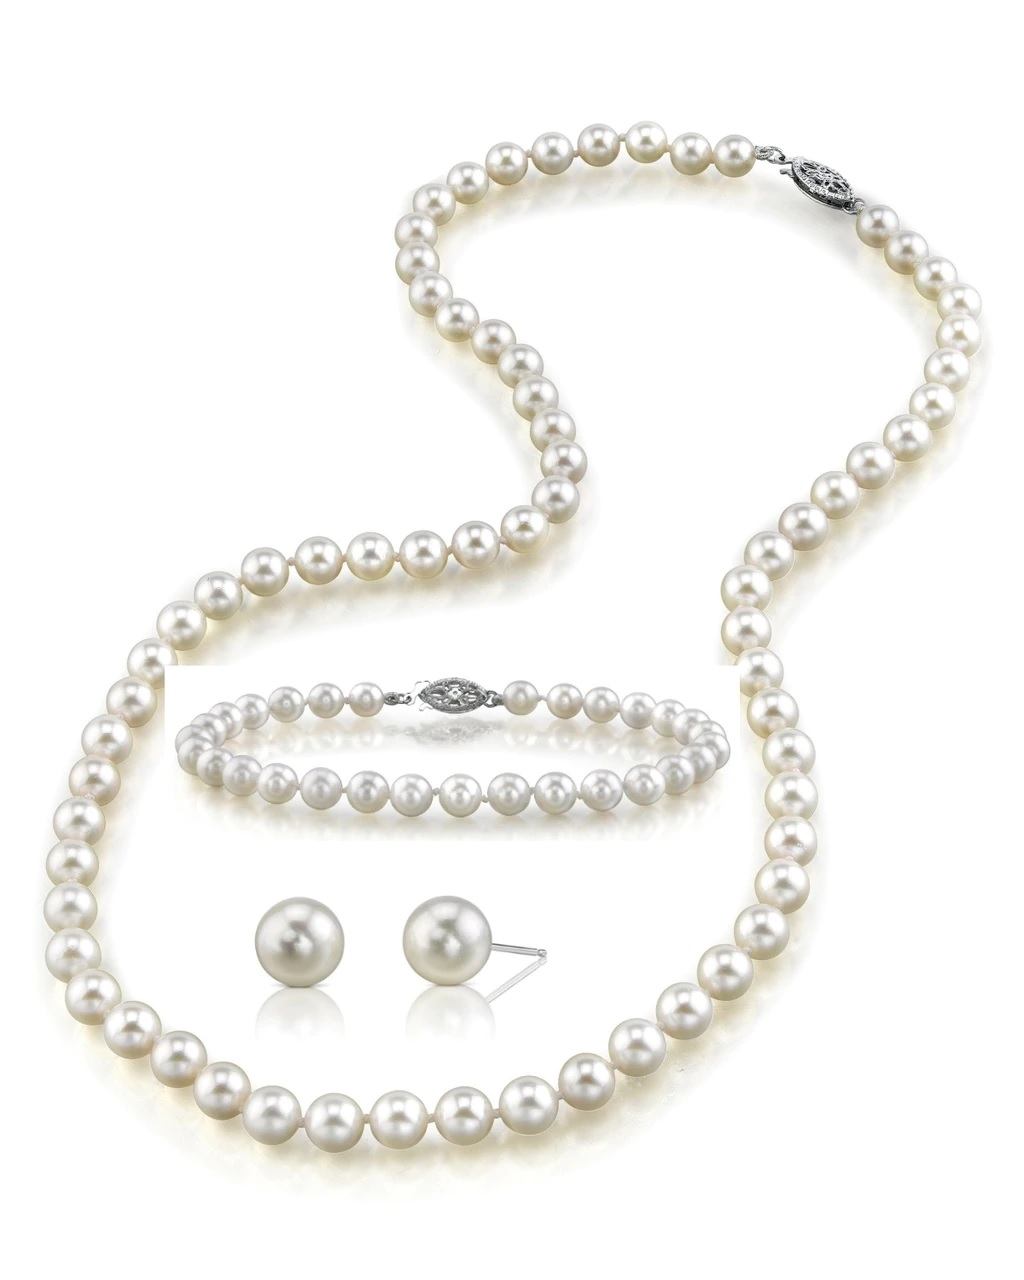 This classic necklace, bracelet and earring set features 6.5-7.0mm Japanese Akoya pearls